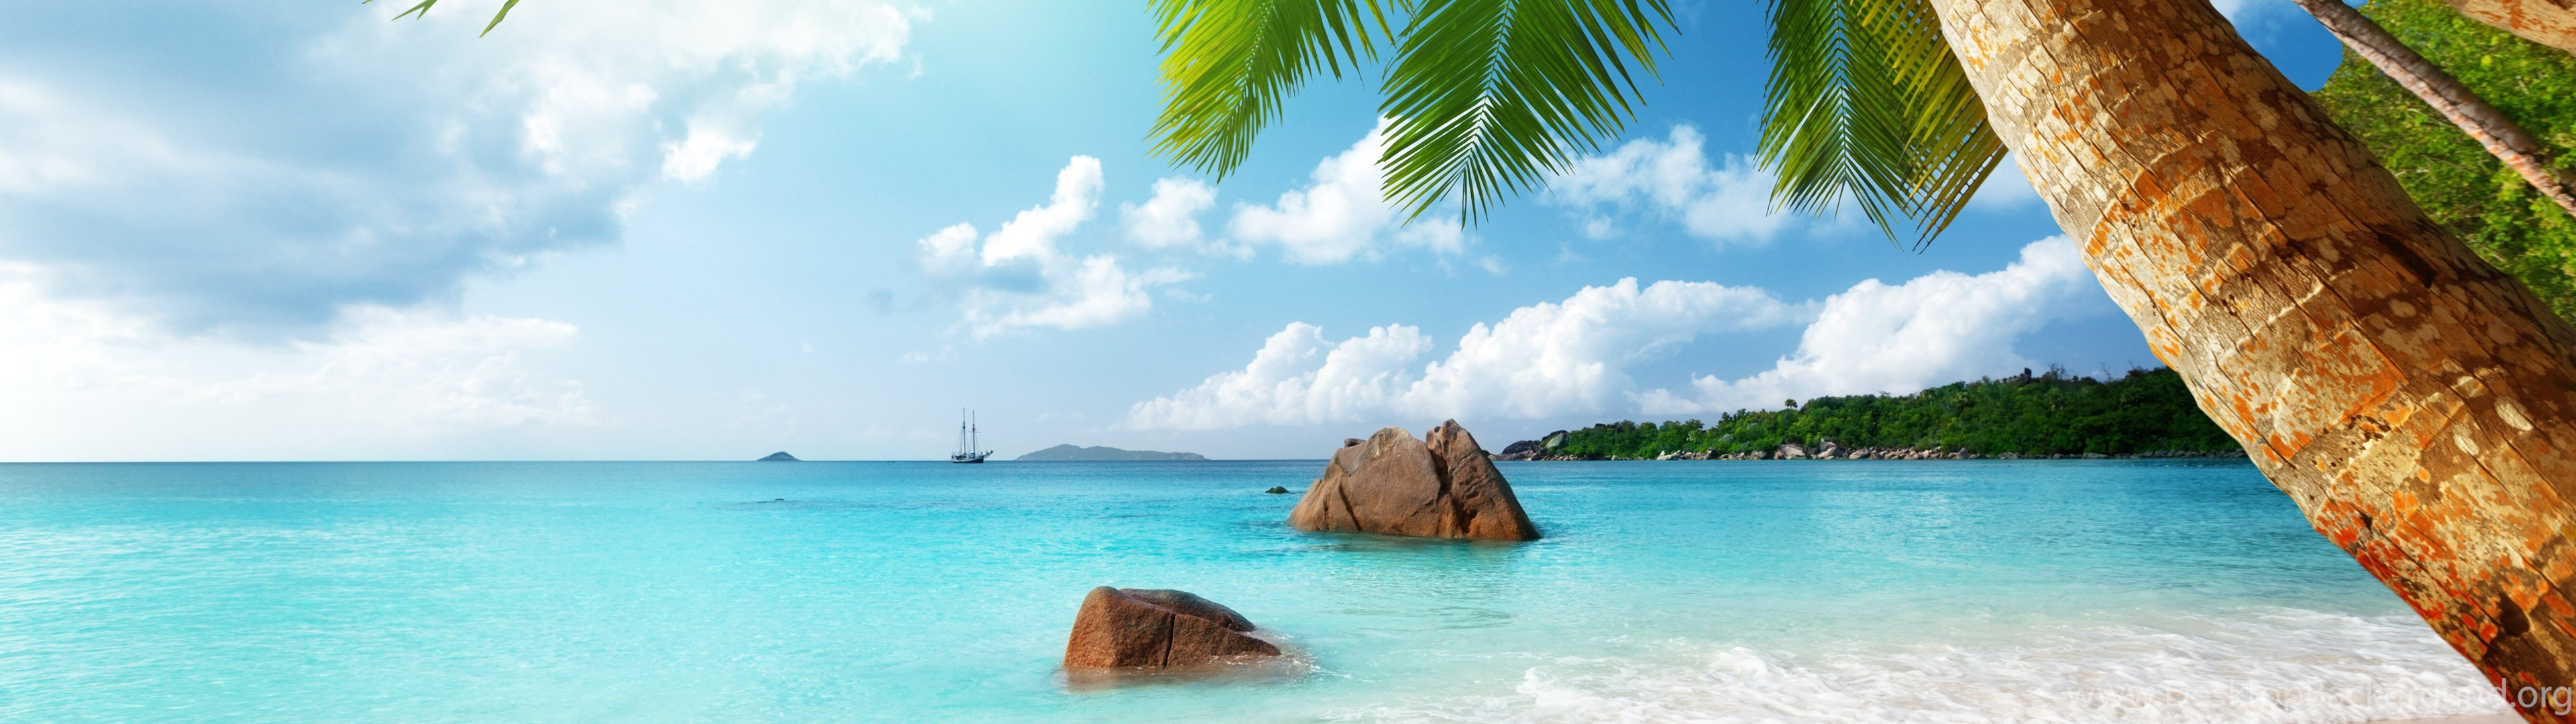 3840x1080 Beach Live Wallpapers Free Download A35 Desktop Background